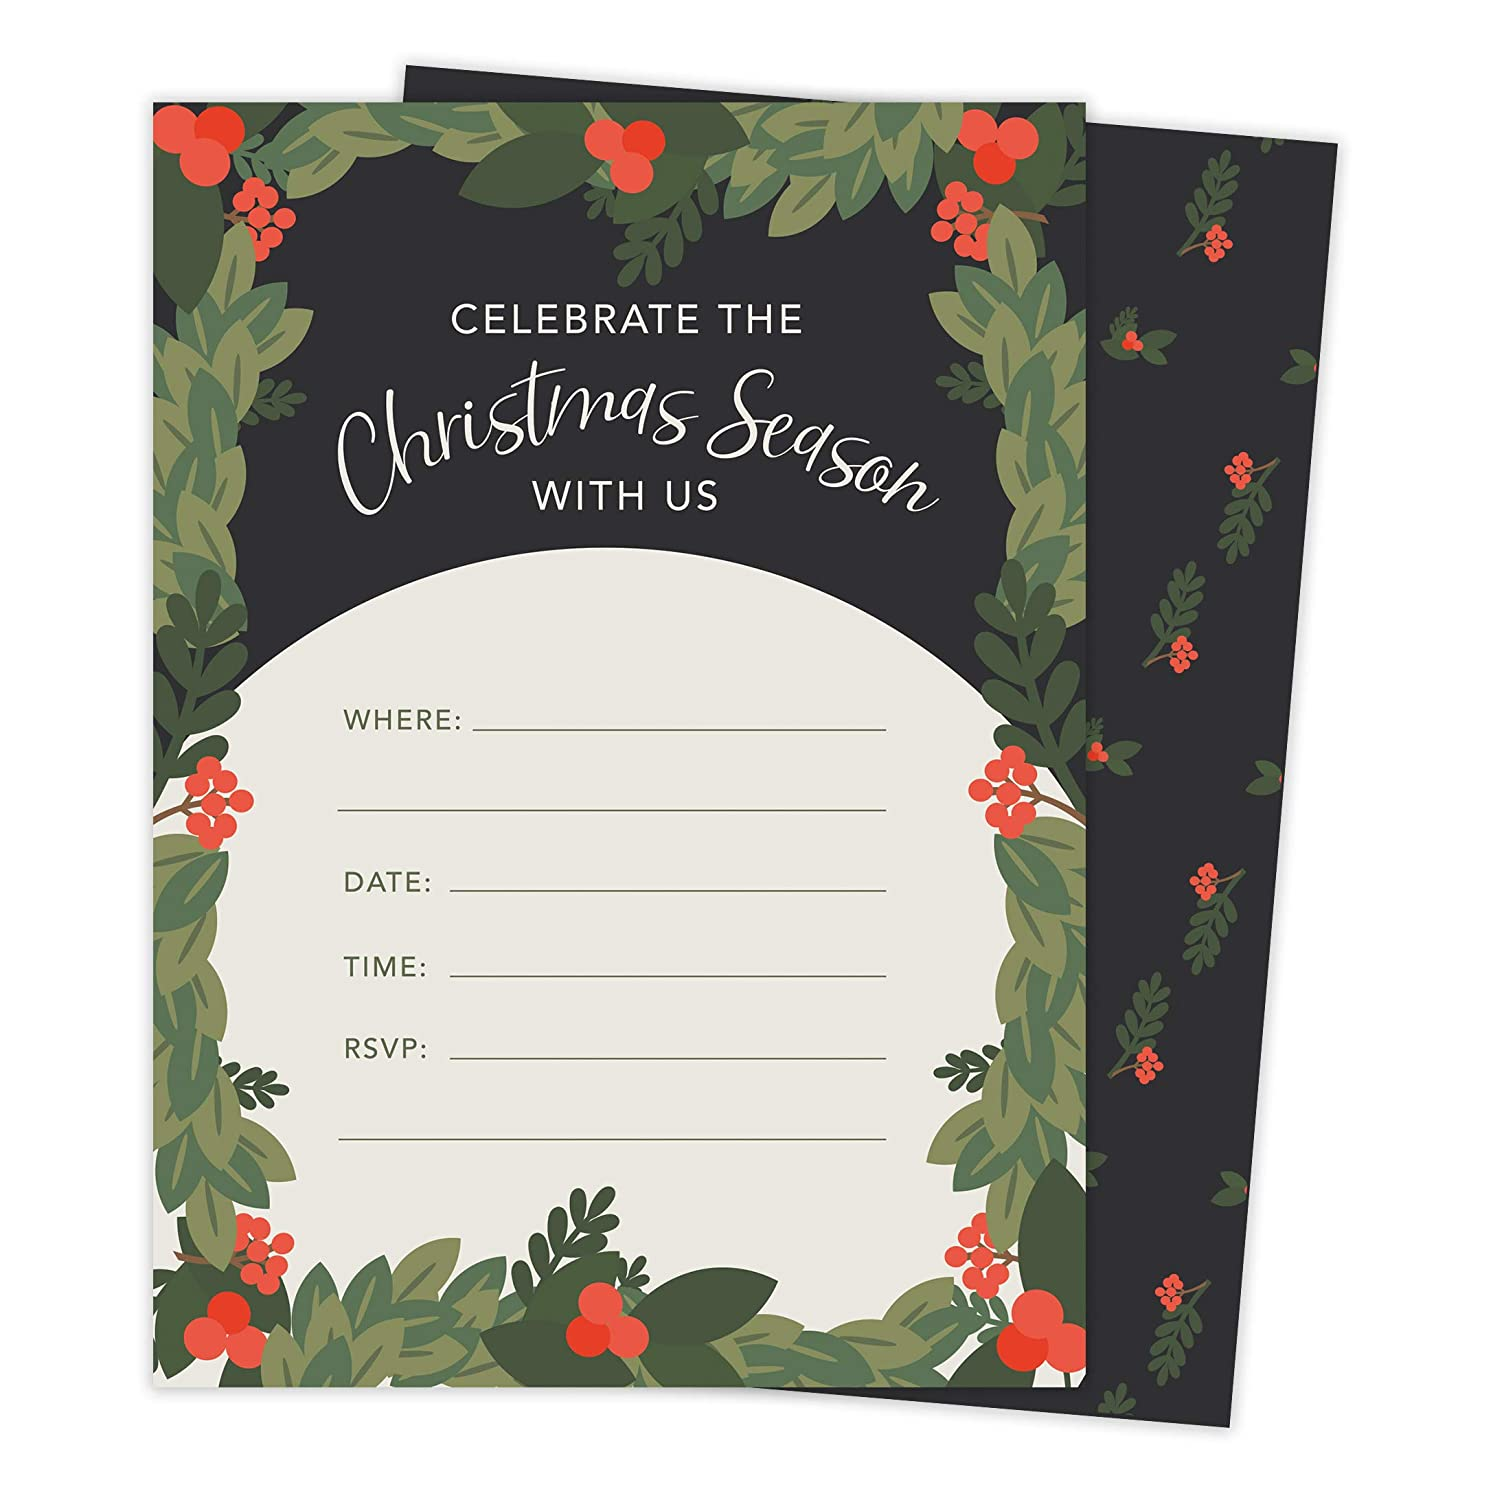 Christmas #2 Holiday Season Party Gathering Invitations Invite Cards 25 Count With Envelopes Seal Stickers Vinyl Party